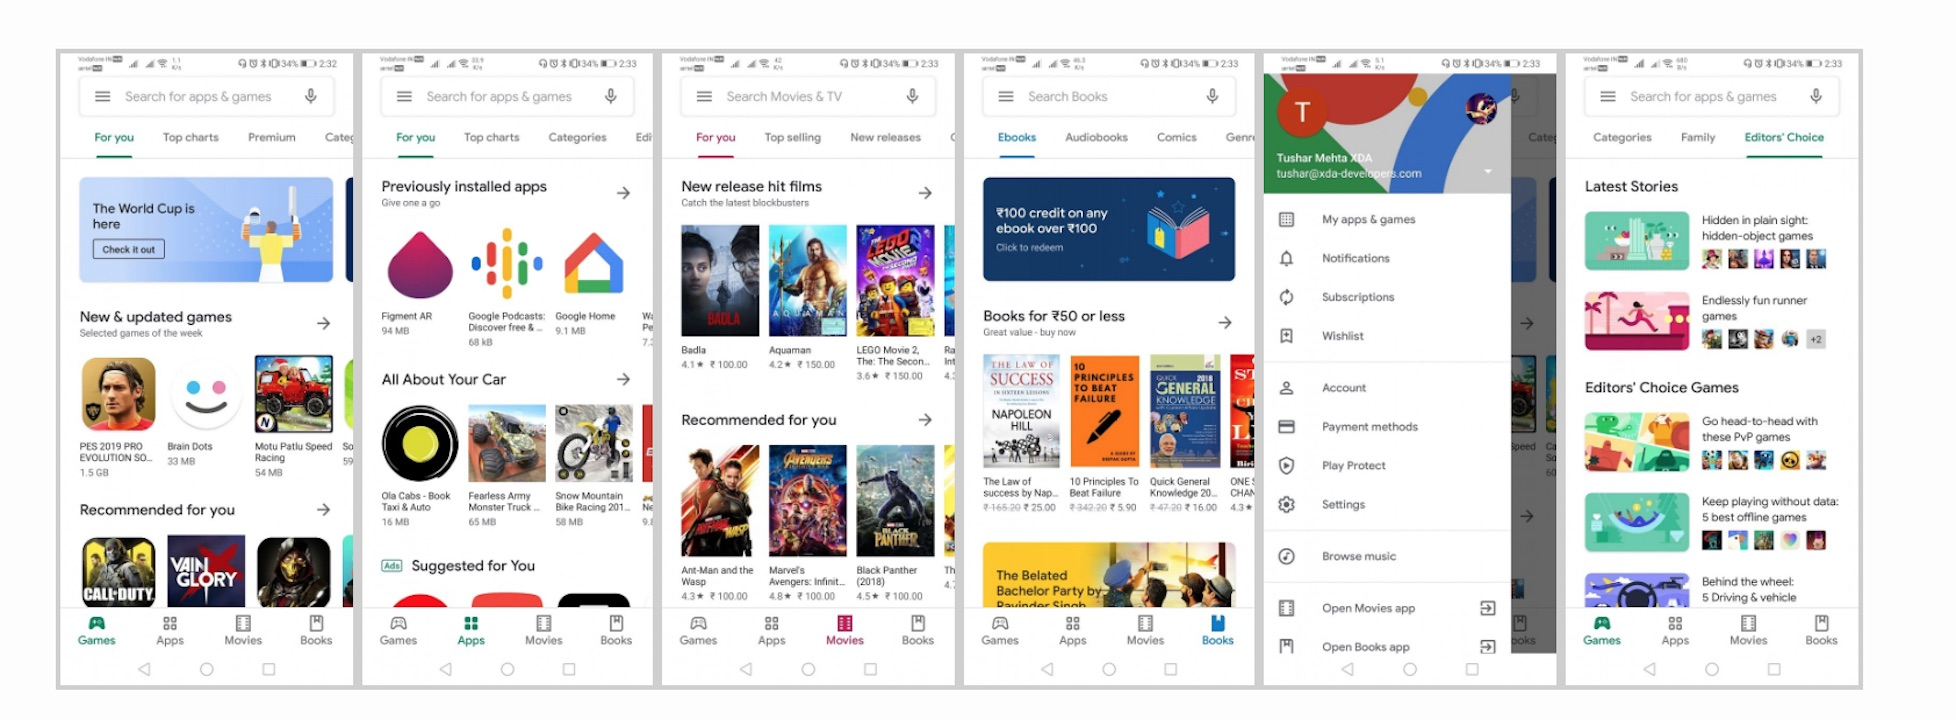 Google Play Store rolls out update with white background